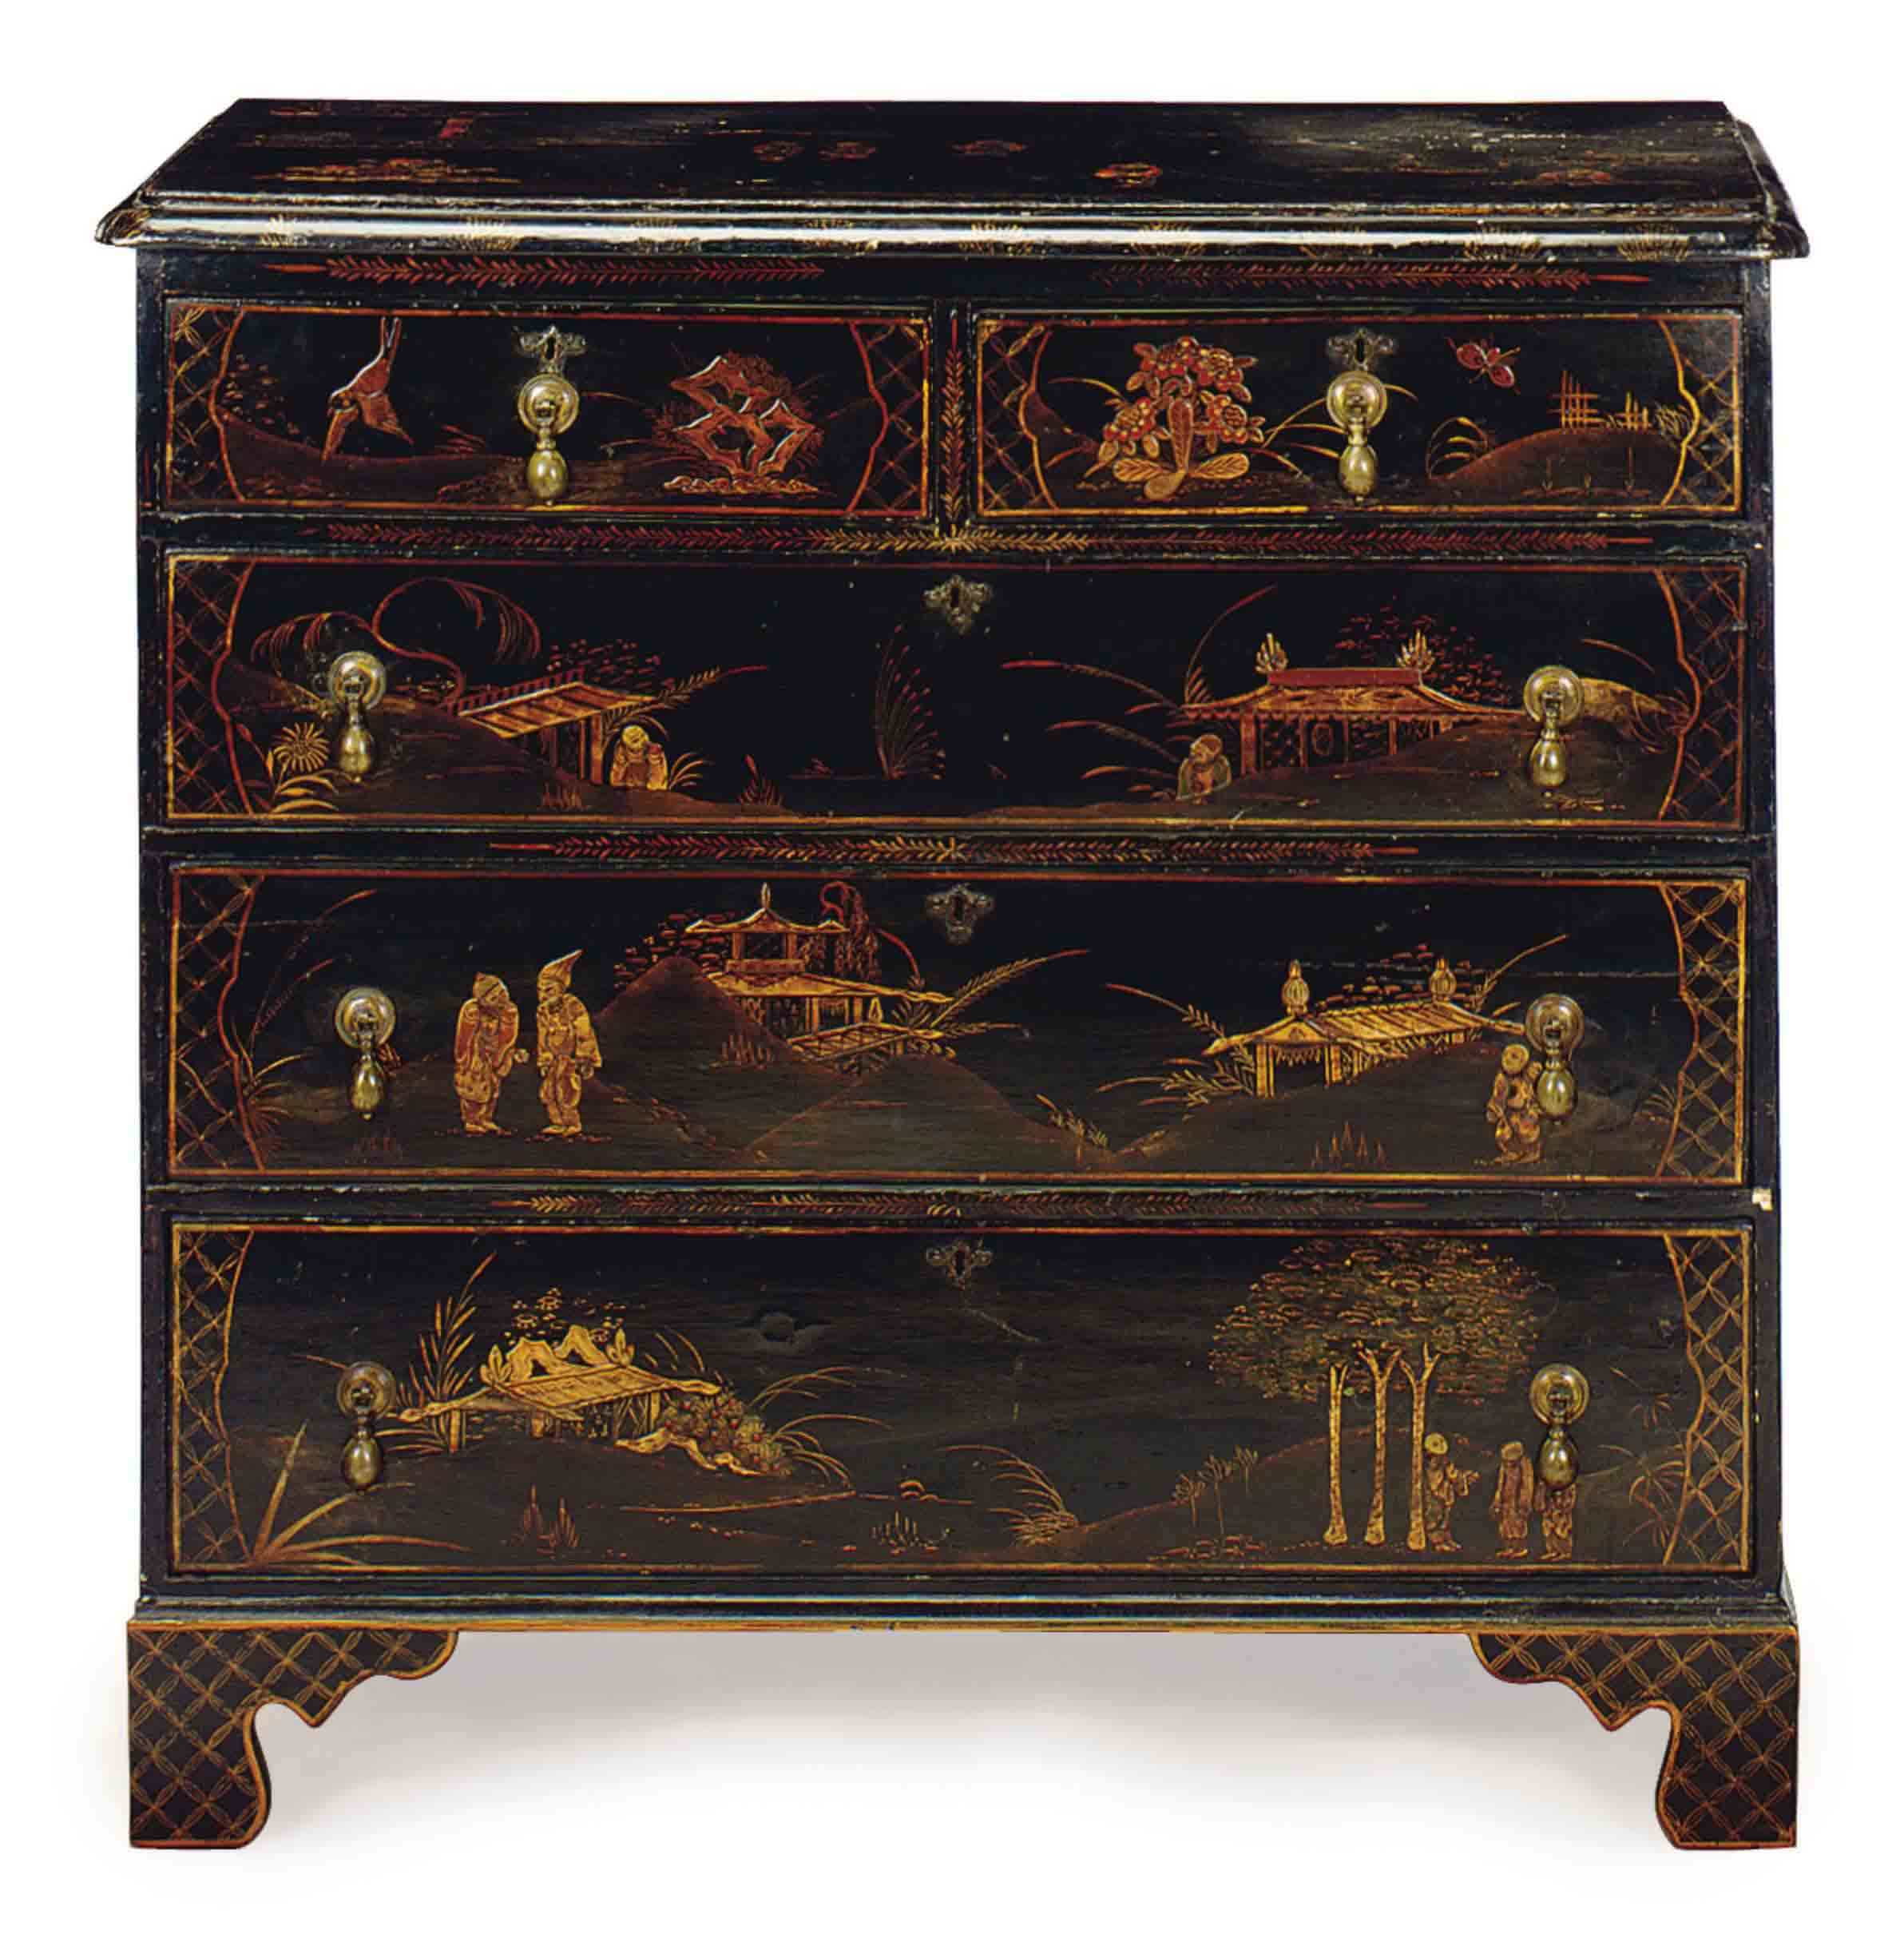 A GEORGE III BLACK AND GILT-JAPANNED CHEST OF DRAWERS,